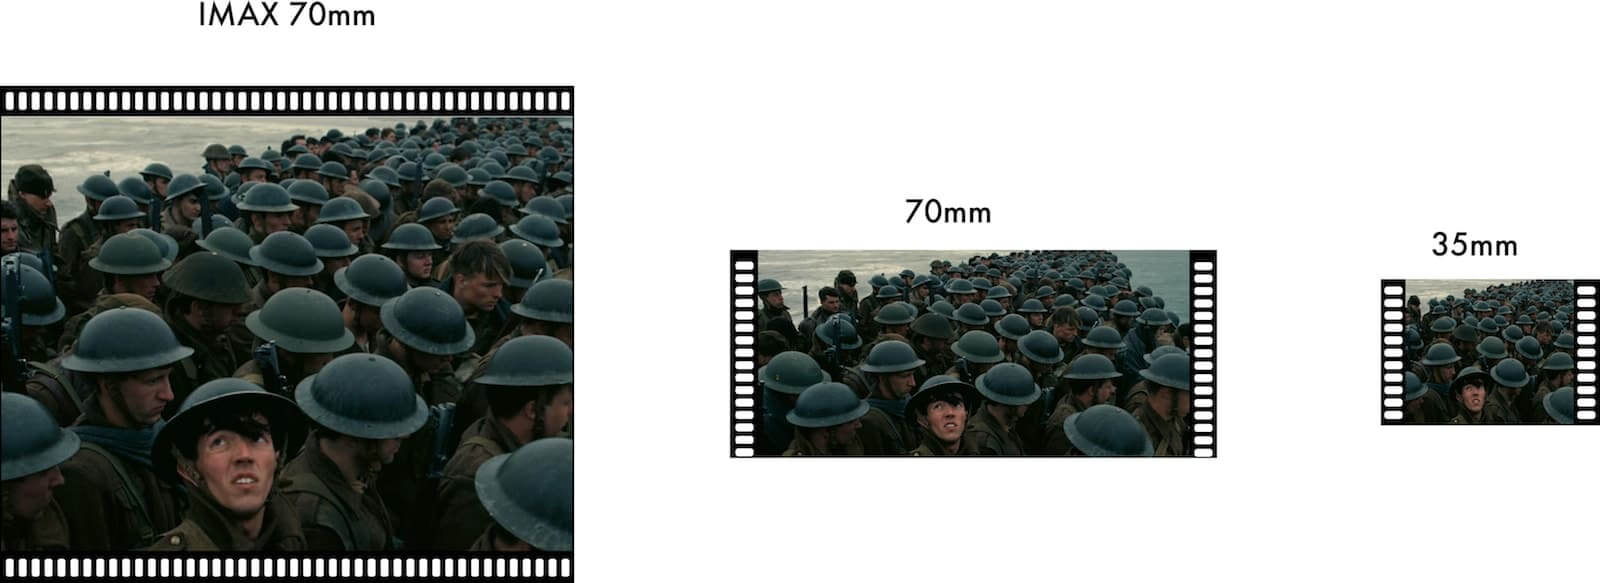 What is IMAX - IMAX 70mm film strips